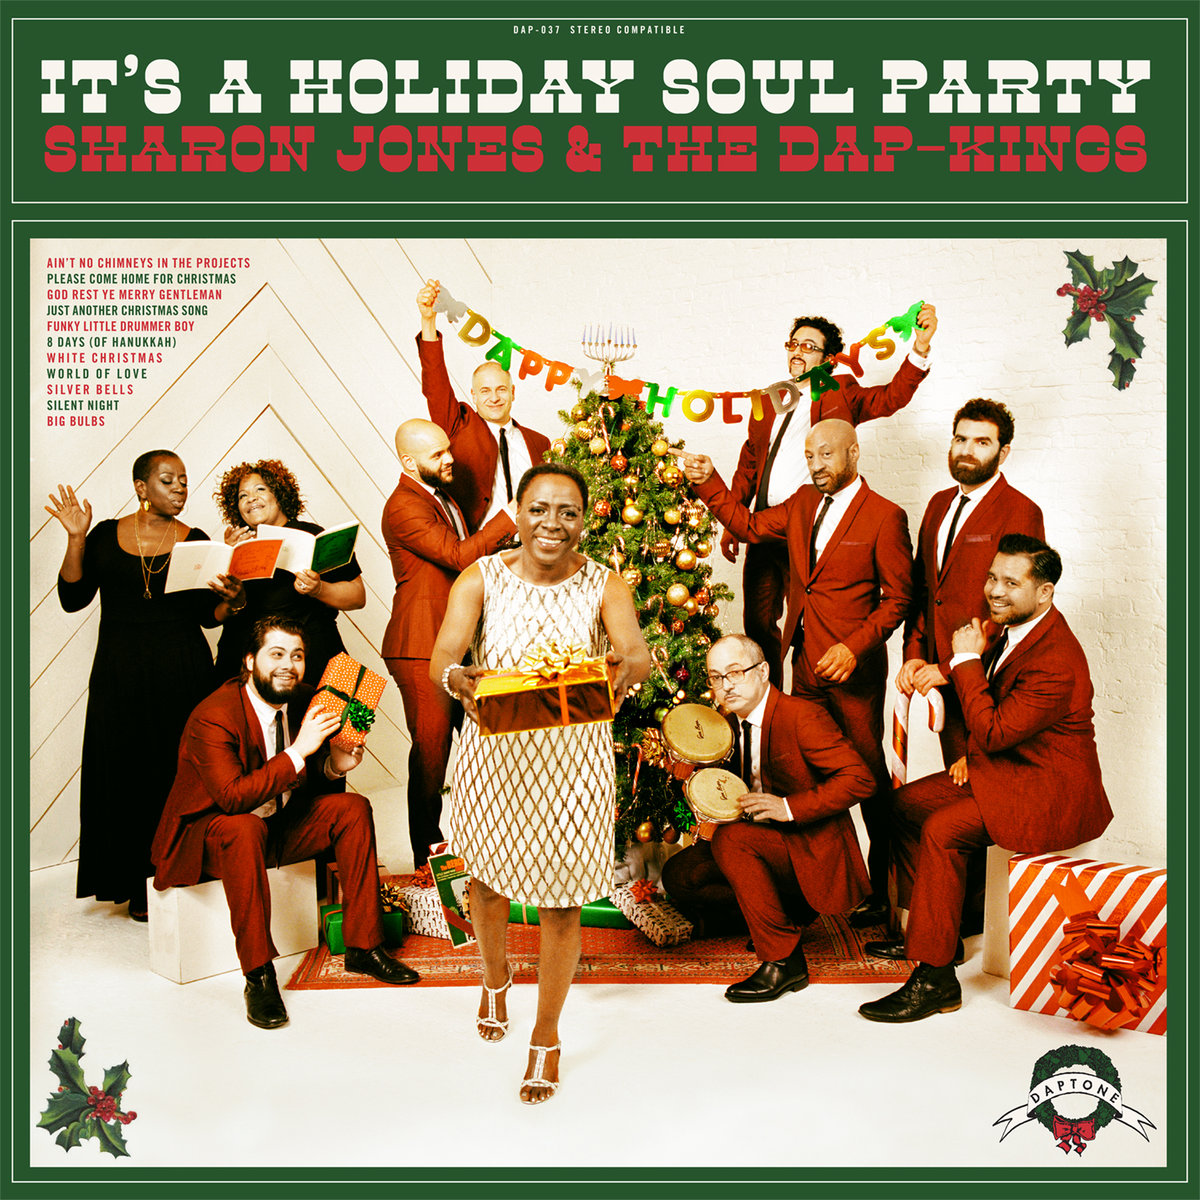 Sharon Jones & The Dap-kings | It's A Holiday Soul Party